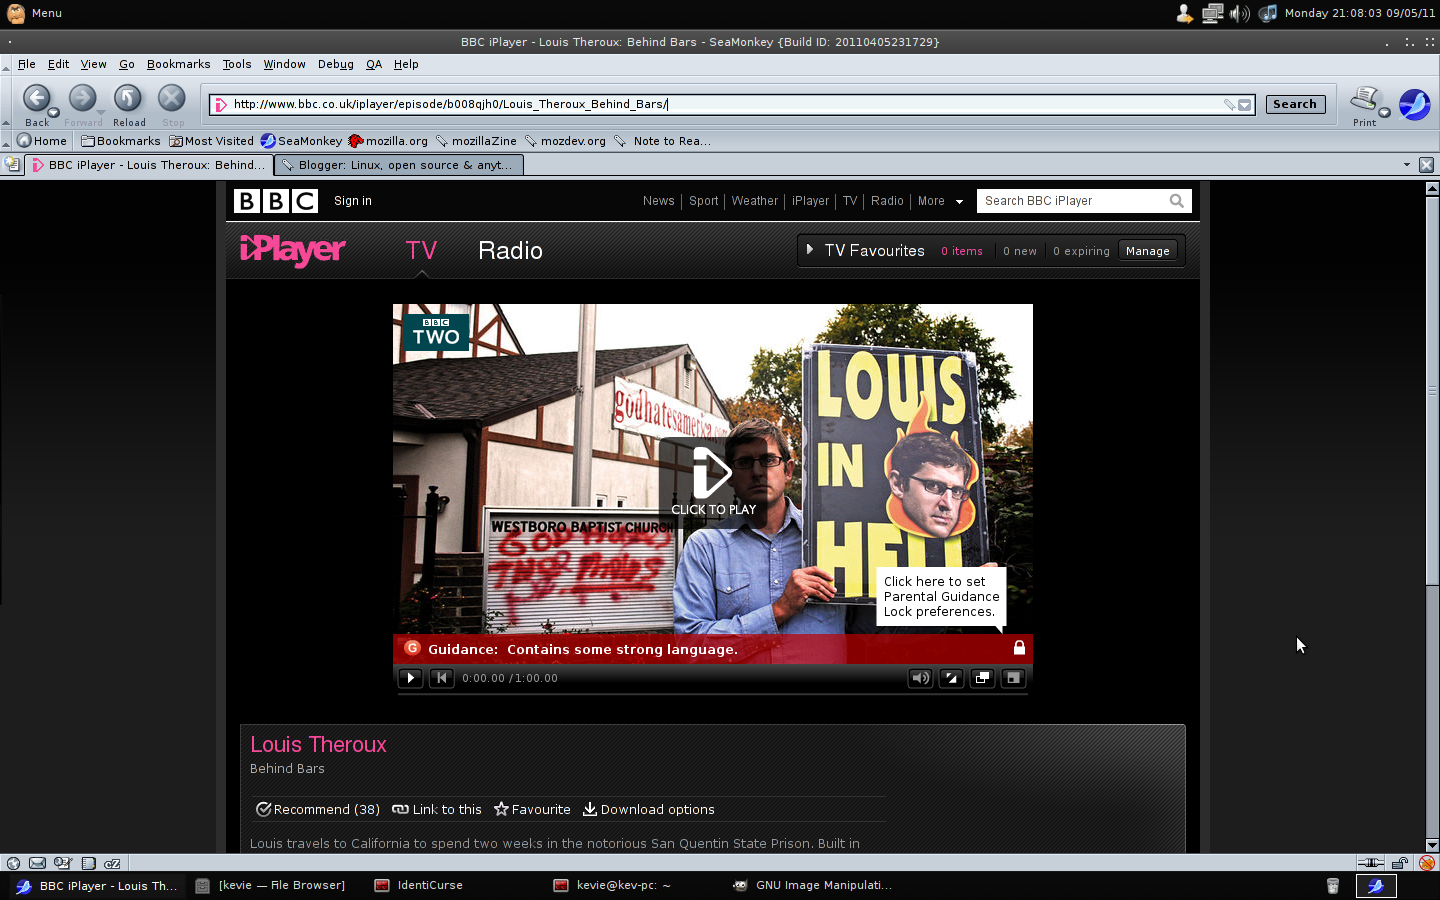 Linux, open source & anything else: Saving BBC iplayer